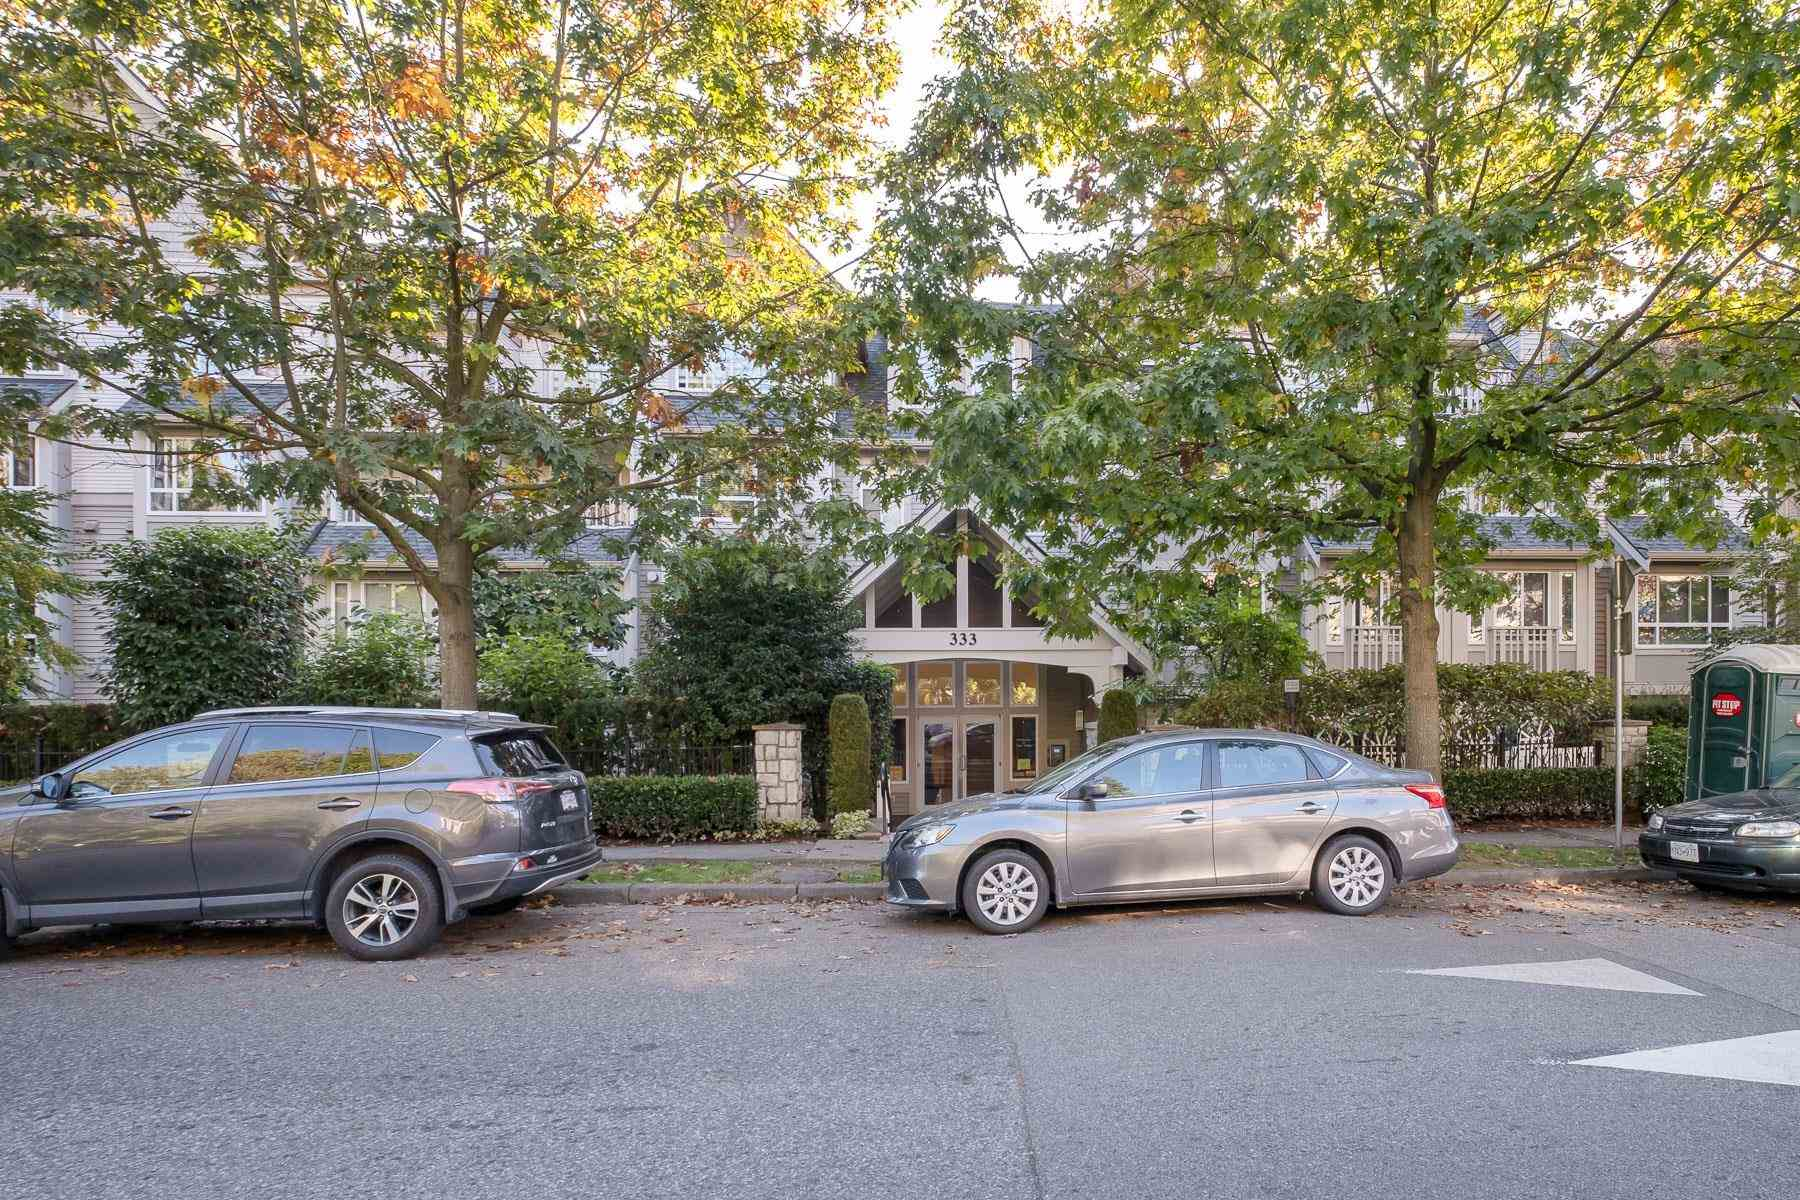 205 333 E 1ST STREET - Lower Lonsdale Apartment/Condo for sale, 1 Bedroom (R2618010) - #29